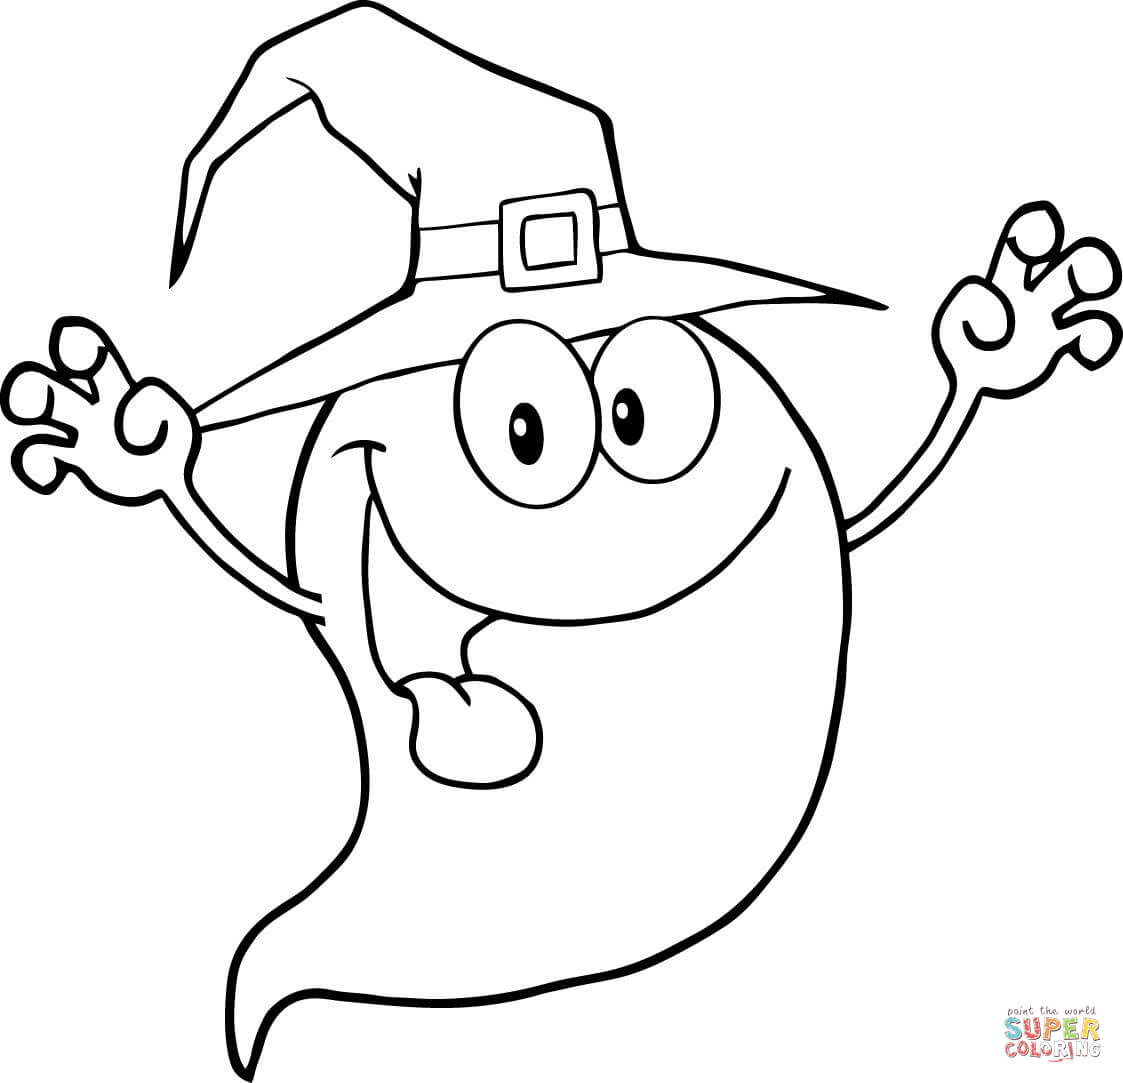 1123x1083 How To Draw Halloween Ghost Step By Step